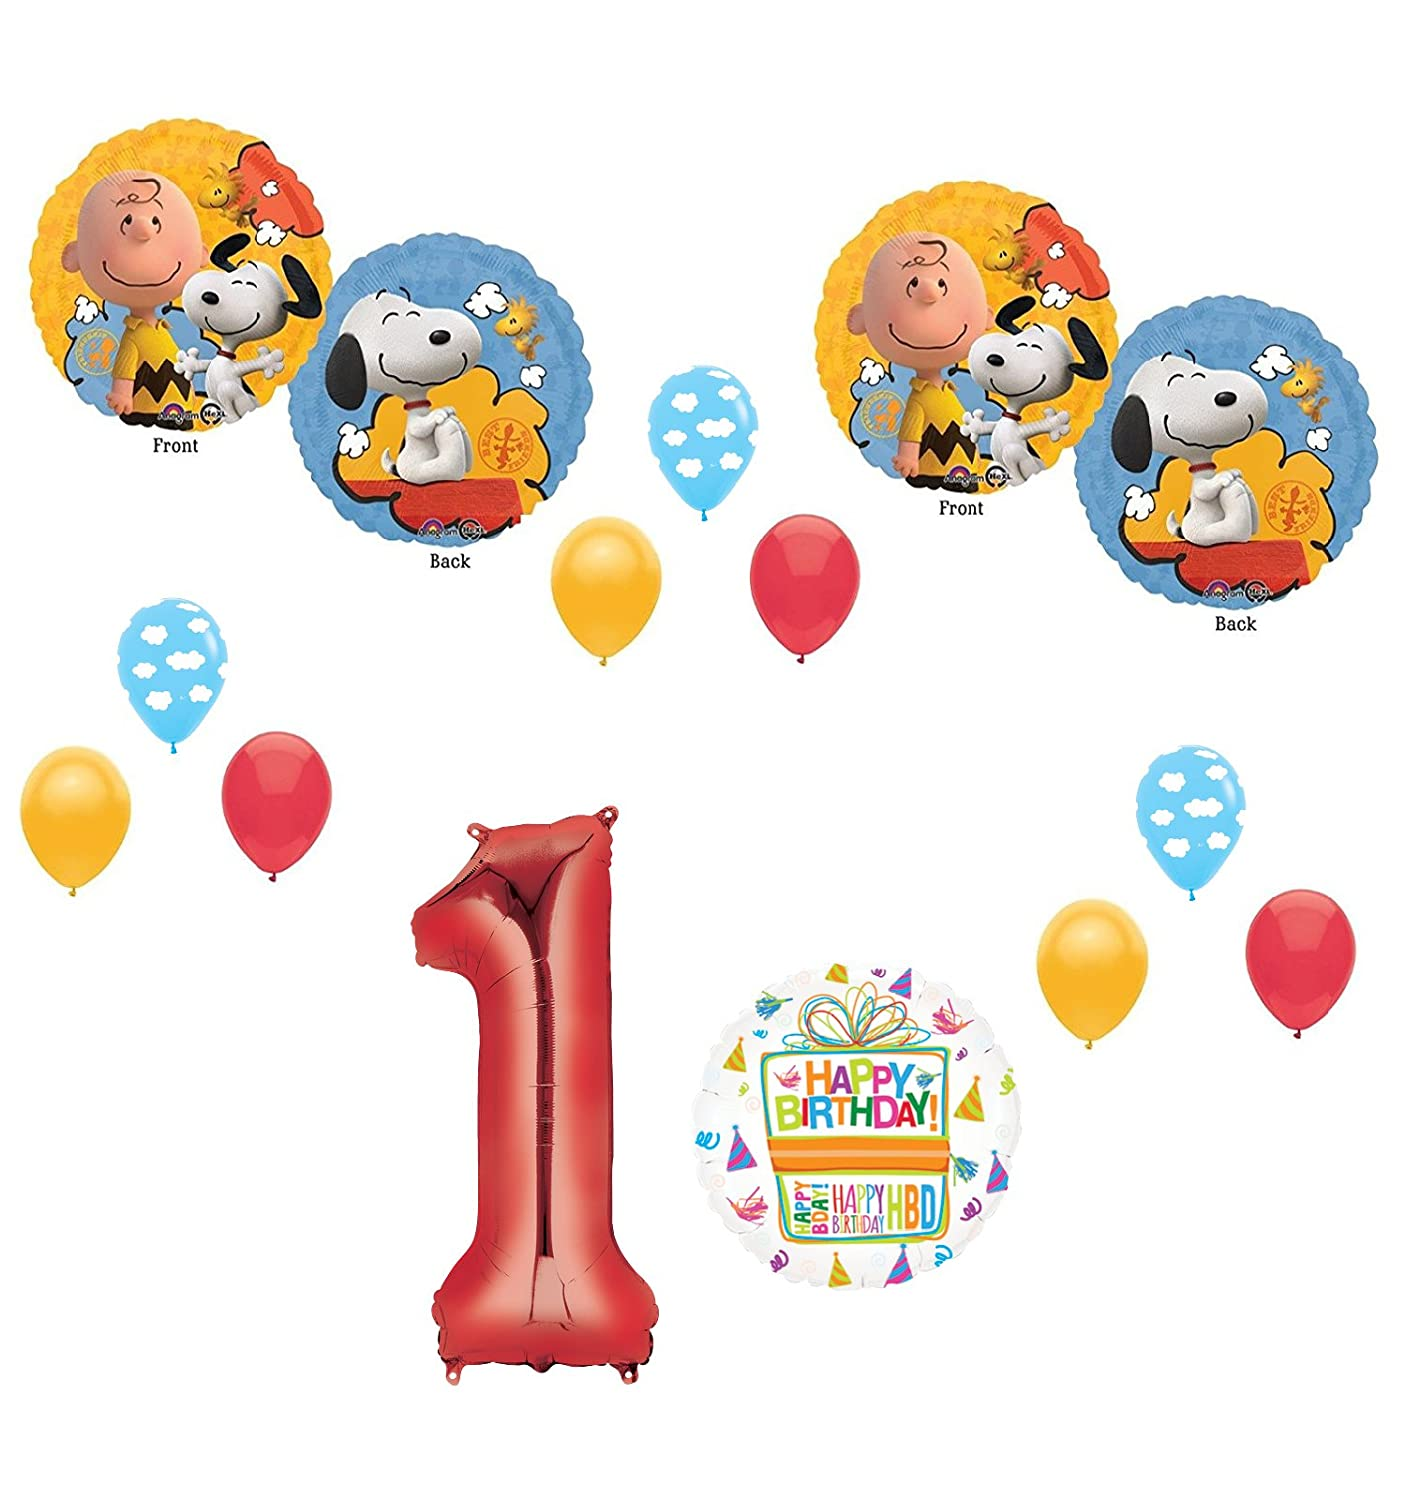 Charlie brown and Snoopy Peanuts 1st Birthday Party Supplies and Balloon Bouquet Decorations Mayflower